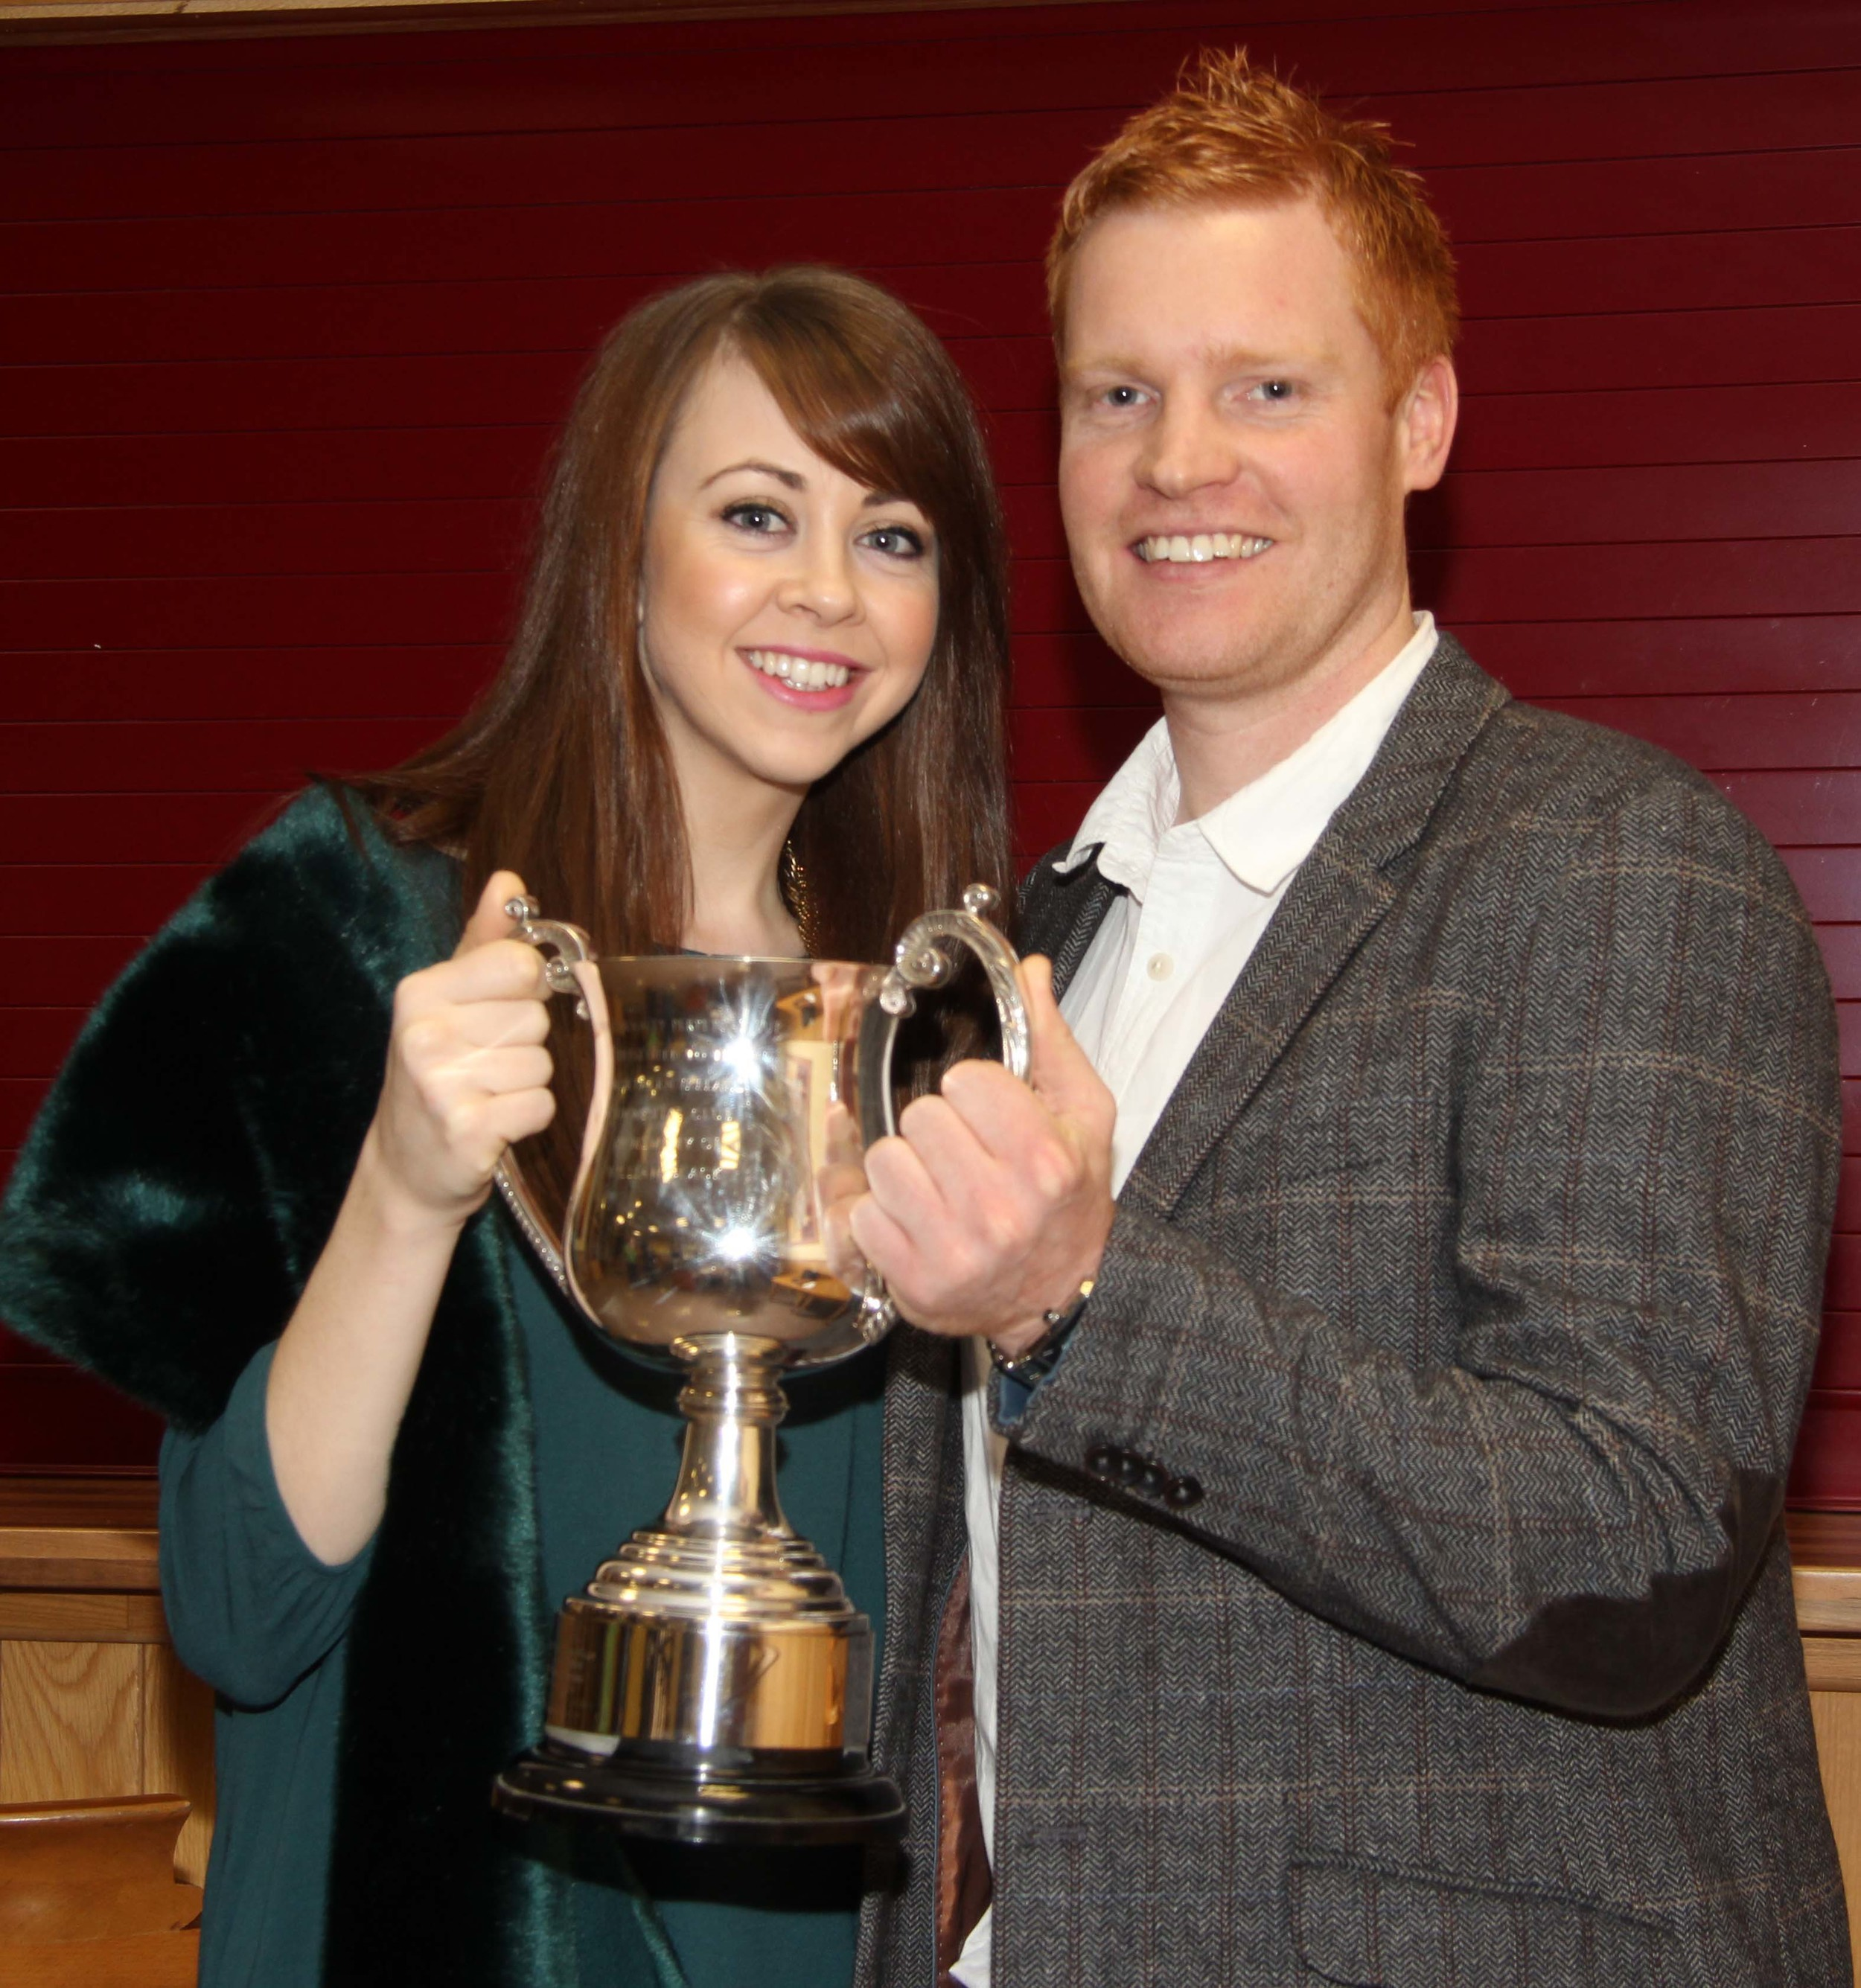 Christopher Weatherup, Ballyclare, and fiancee Laura McLean, with the William Black Memorial Cup for the supreme champion at Balmoral Show.